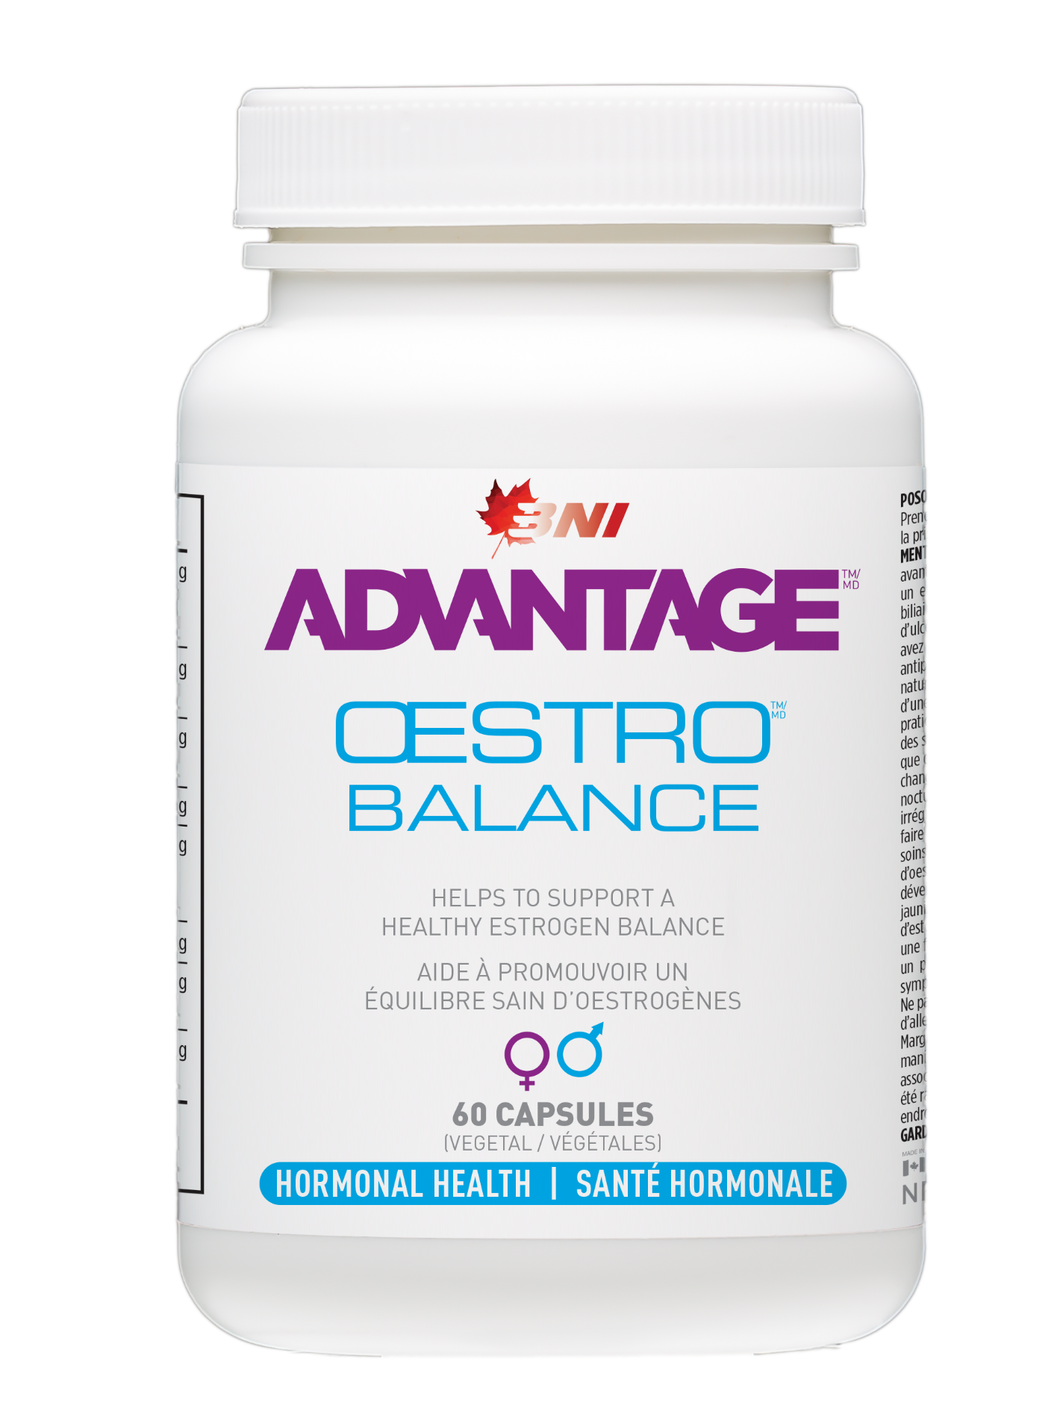 Advantage Oestro Balance 60 caps